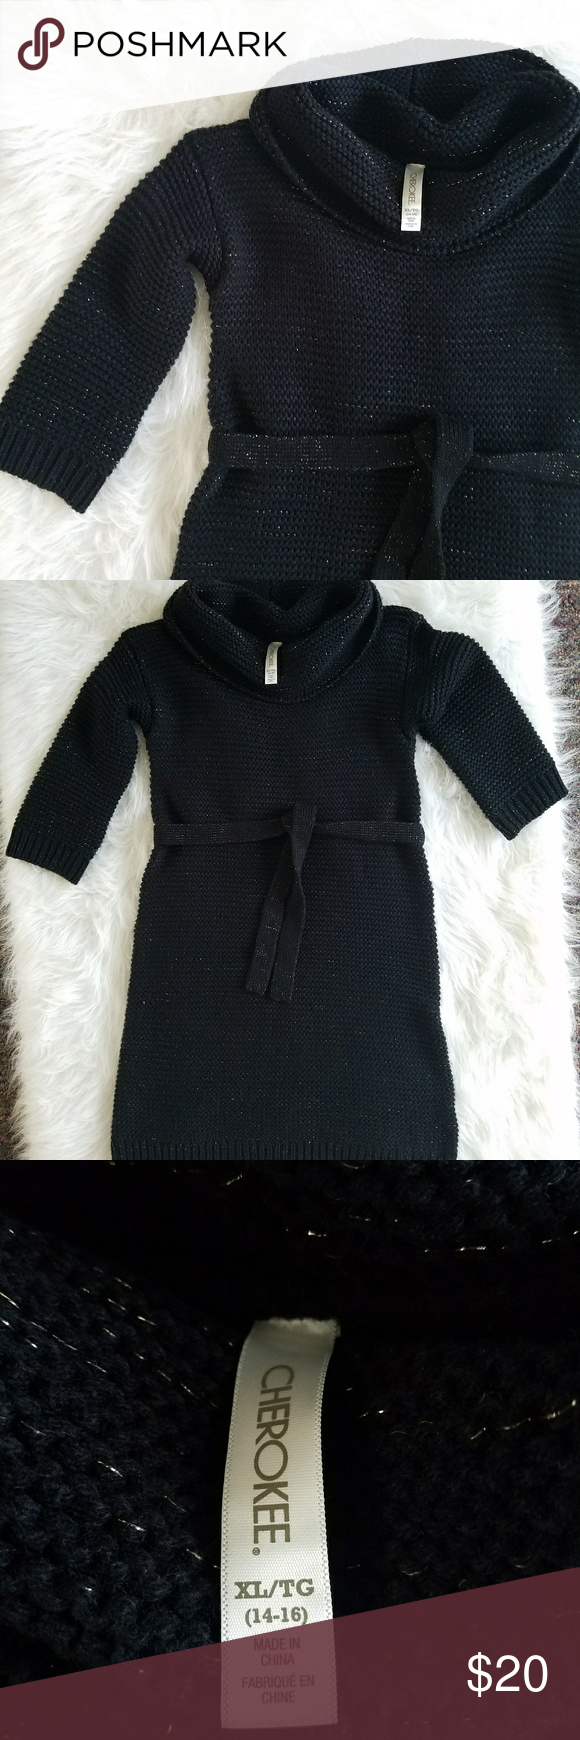 Cherokee black sweater dress | Black sweater dress, Cherokee and ...